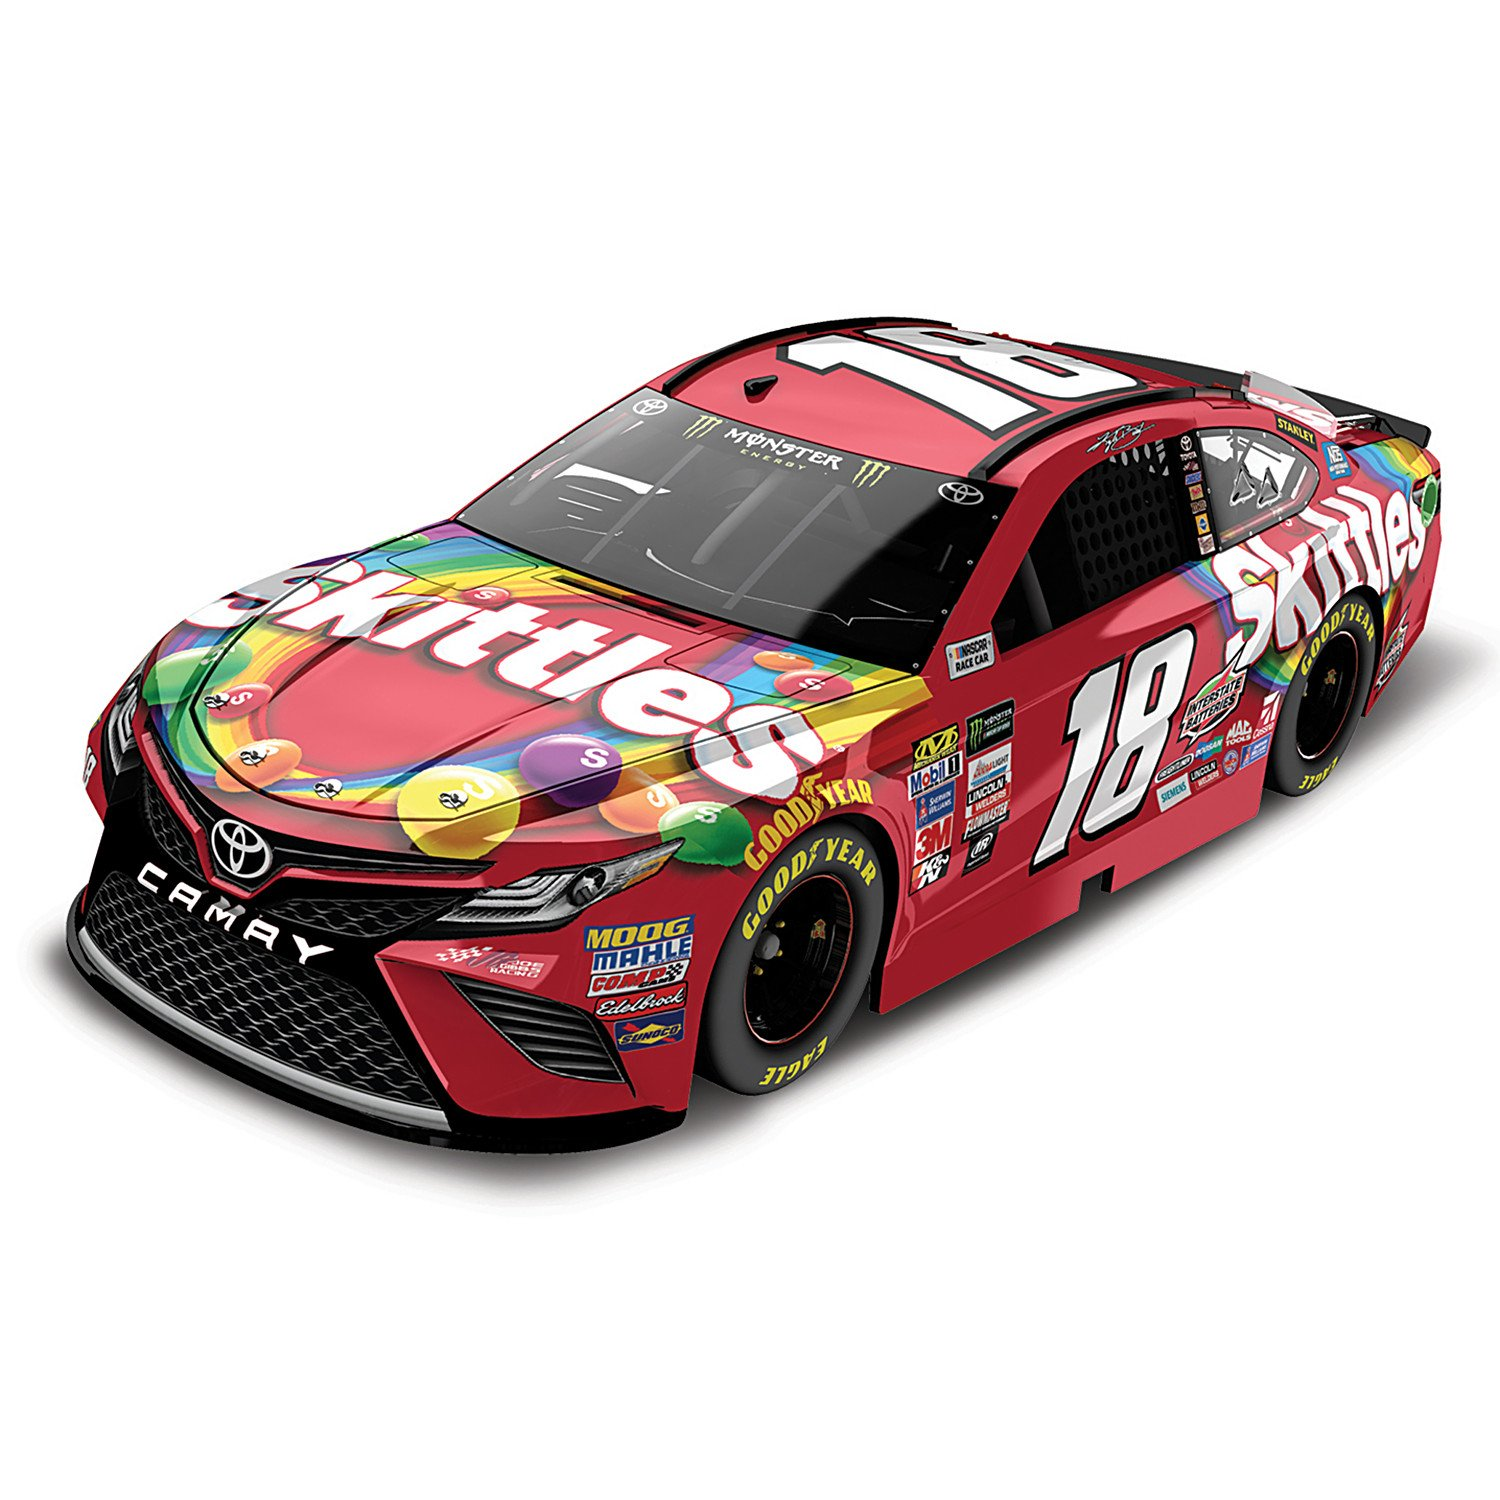 1:24 Scale Kyle Busch No 18 Skittles 2017 NASCAR Lionel Racing Diecast Car by The Hamilton Collection 09-07494-003